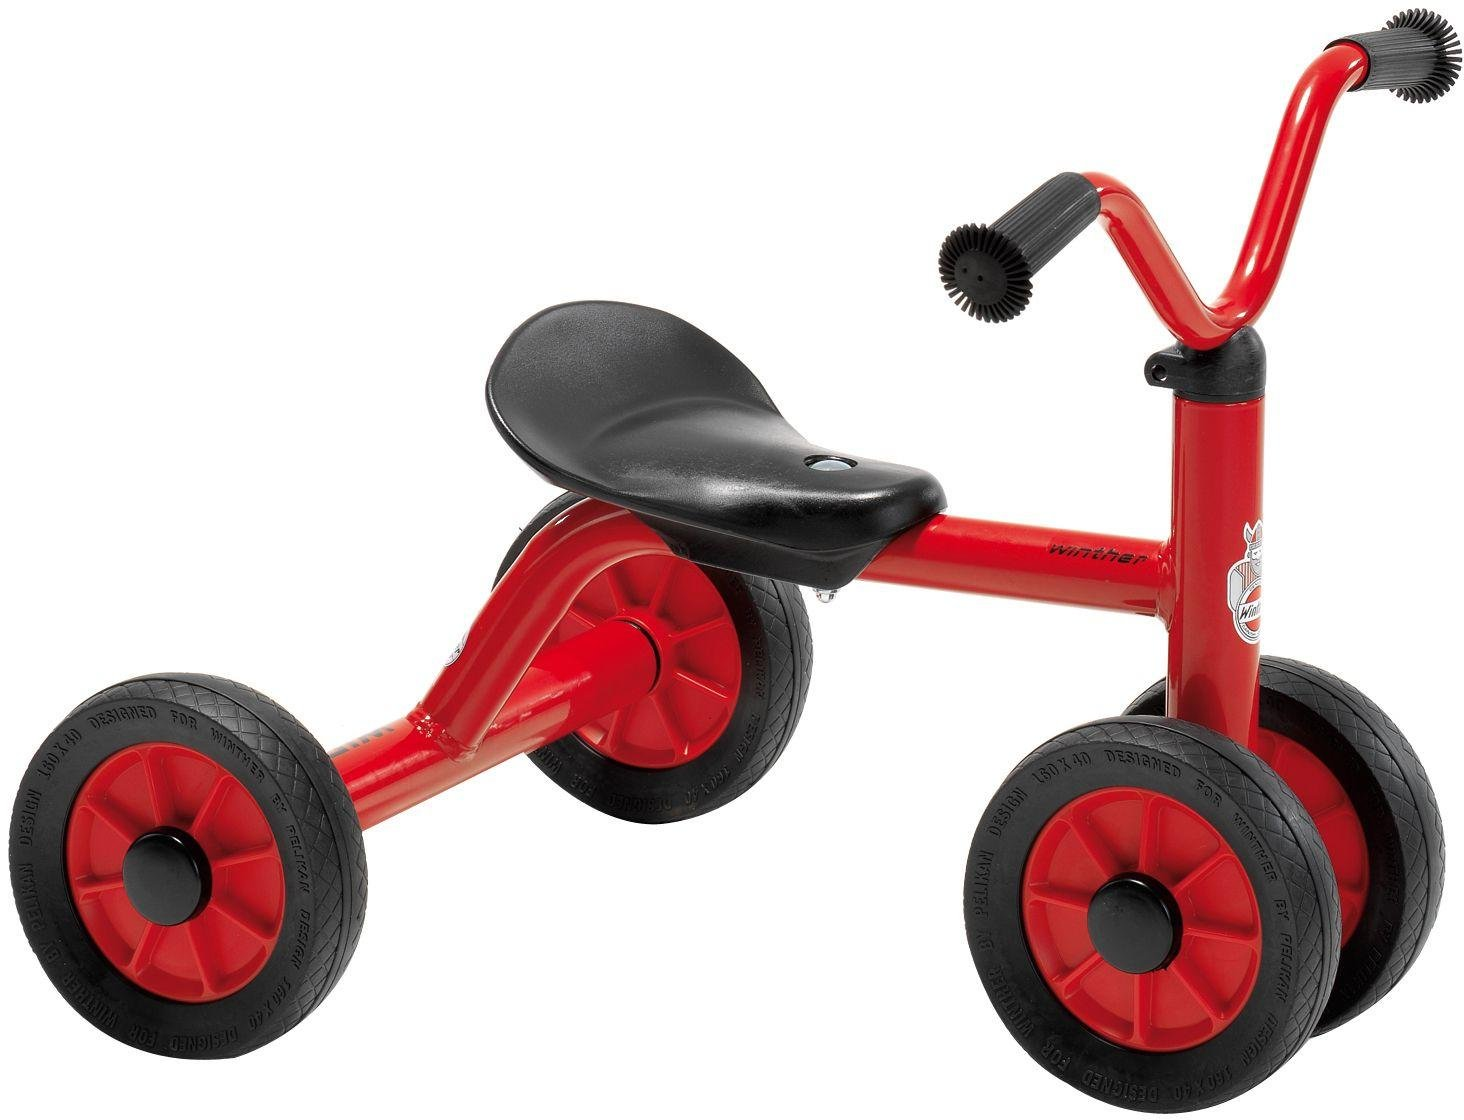 Winther Mini Viking Push Bike For One   Red.